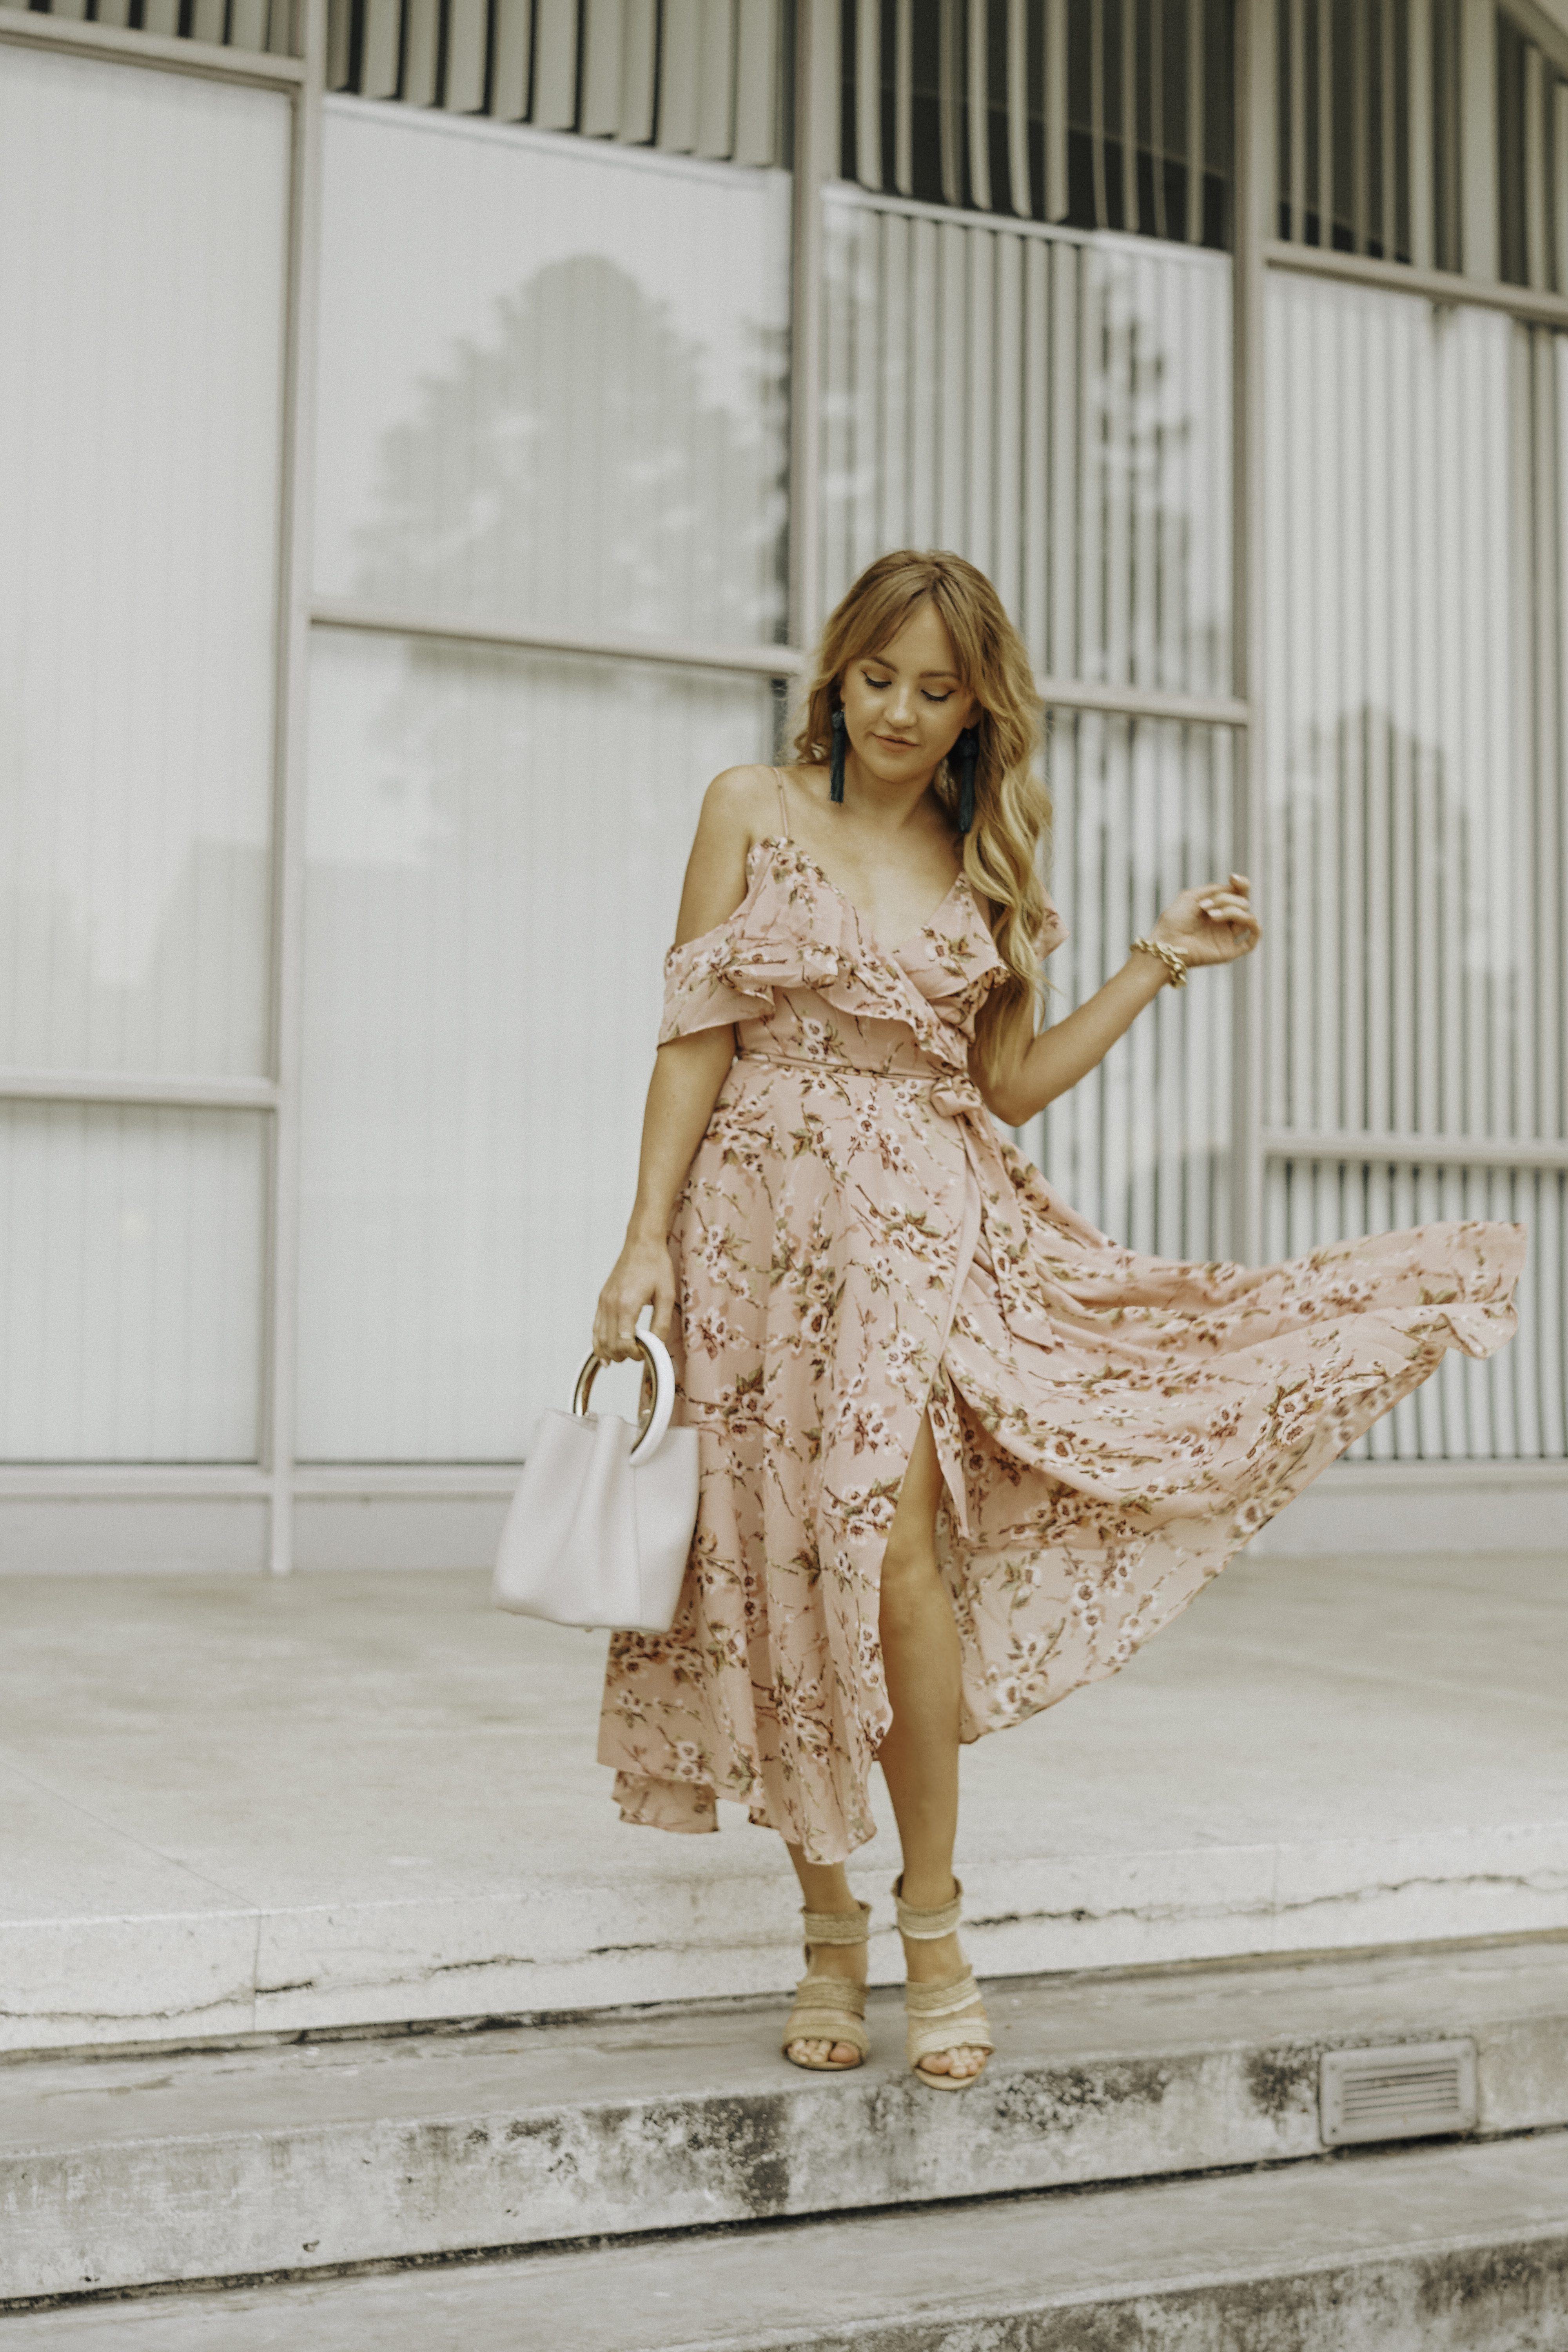 hannah hagler, hello hannah, straw heeled sandals, melie bianco gemma crossbody, melie bianco vegan handbag, wayf floral dress, vanessa mooney tassel earrings, cruelty-free fashion, sustainable fashion bloggers